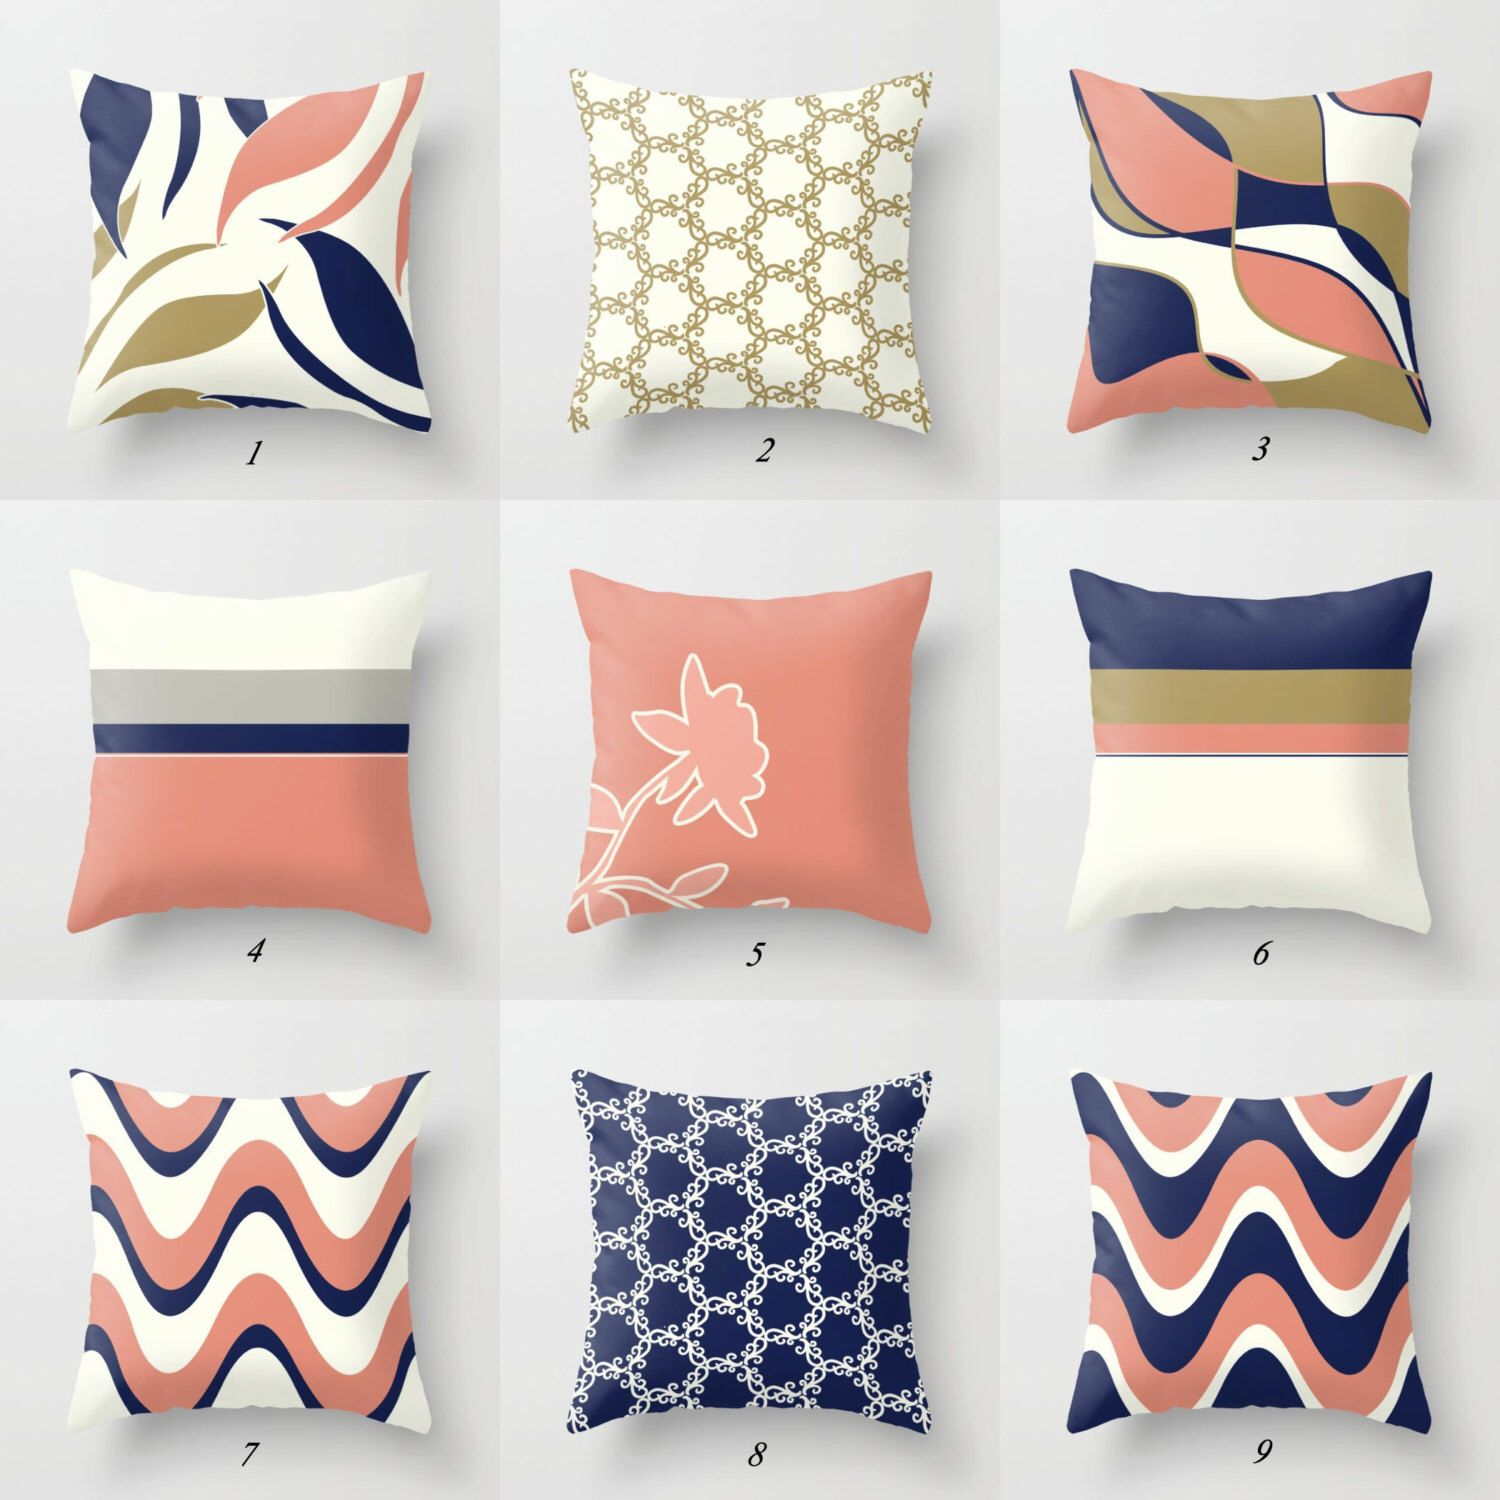 Navy Blue Pillow Pink And Blue Pillow Covers Pink And Navy Coral Pillow Pink And Gold Pillow Blue Pillows Decorative Blue Throw Pillows Navy Blue Pillows